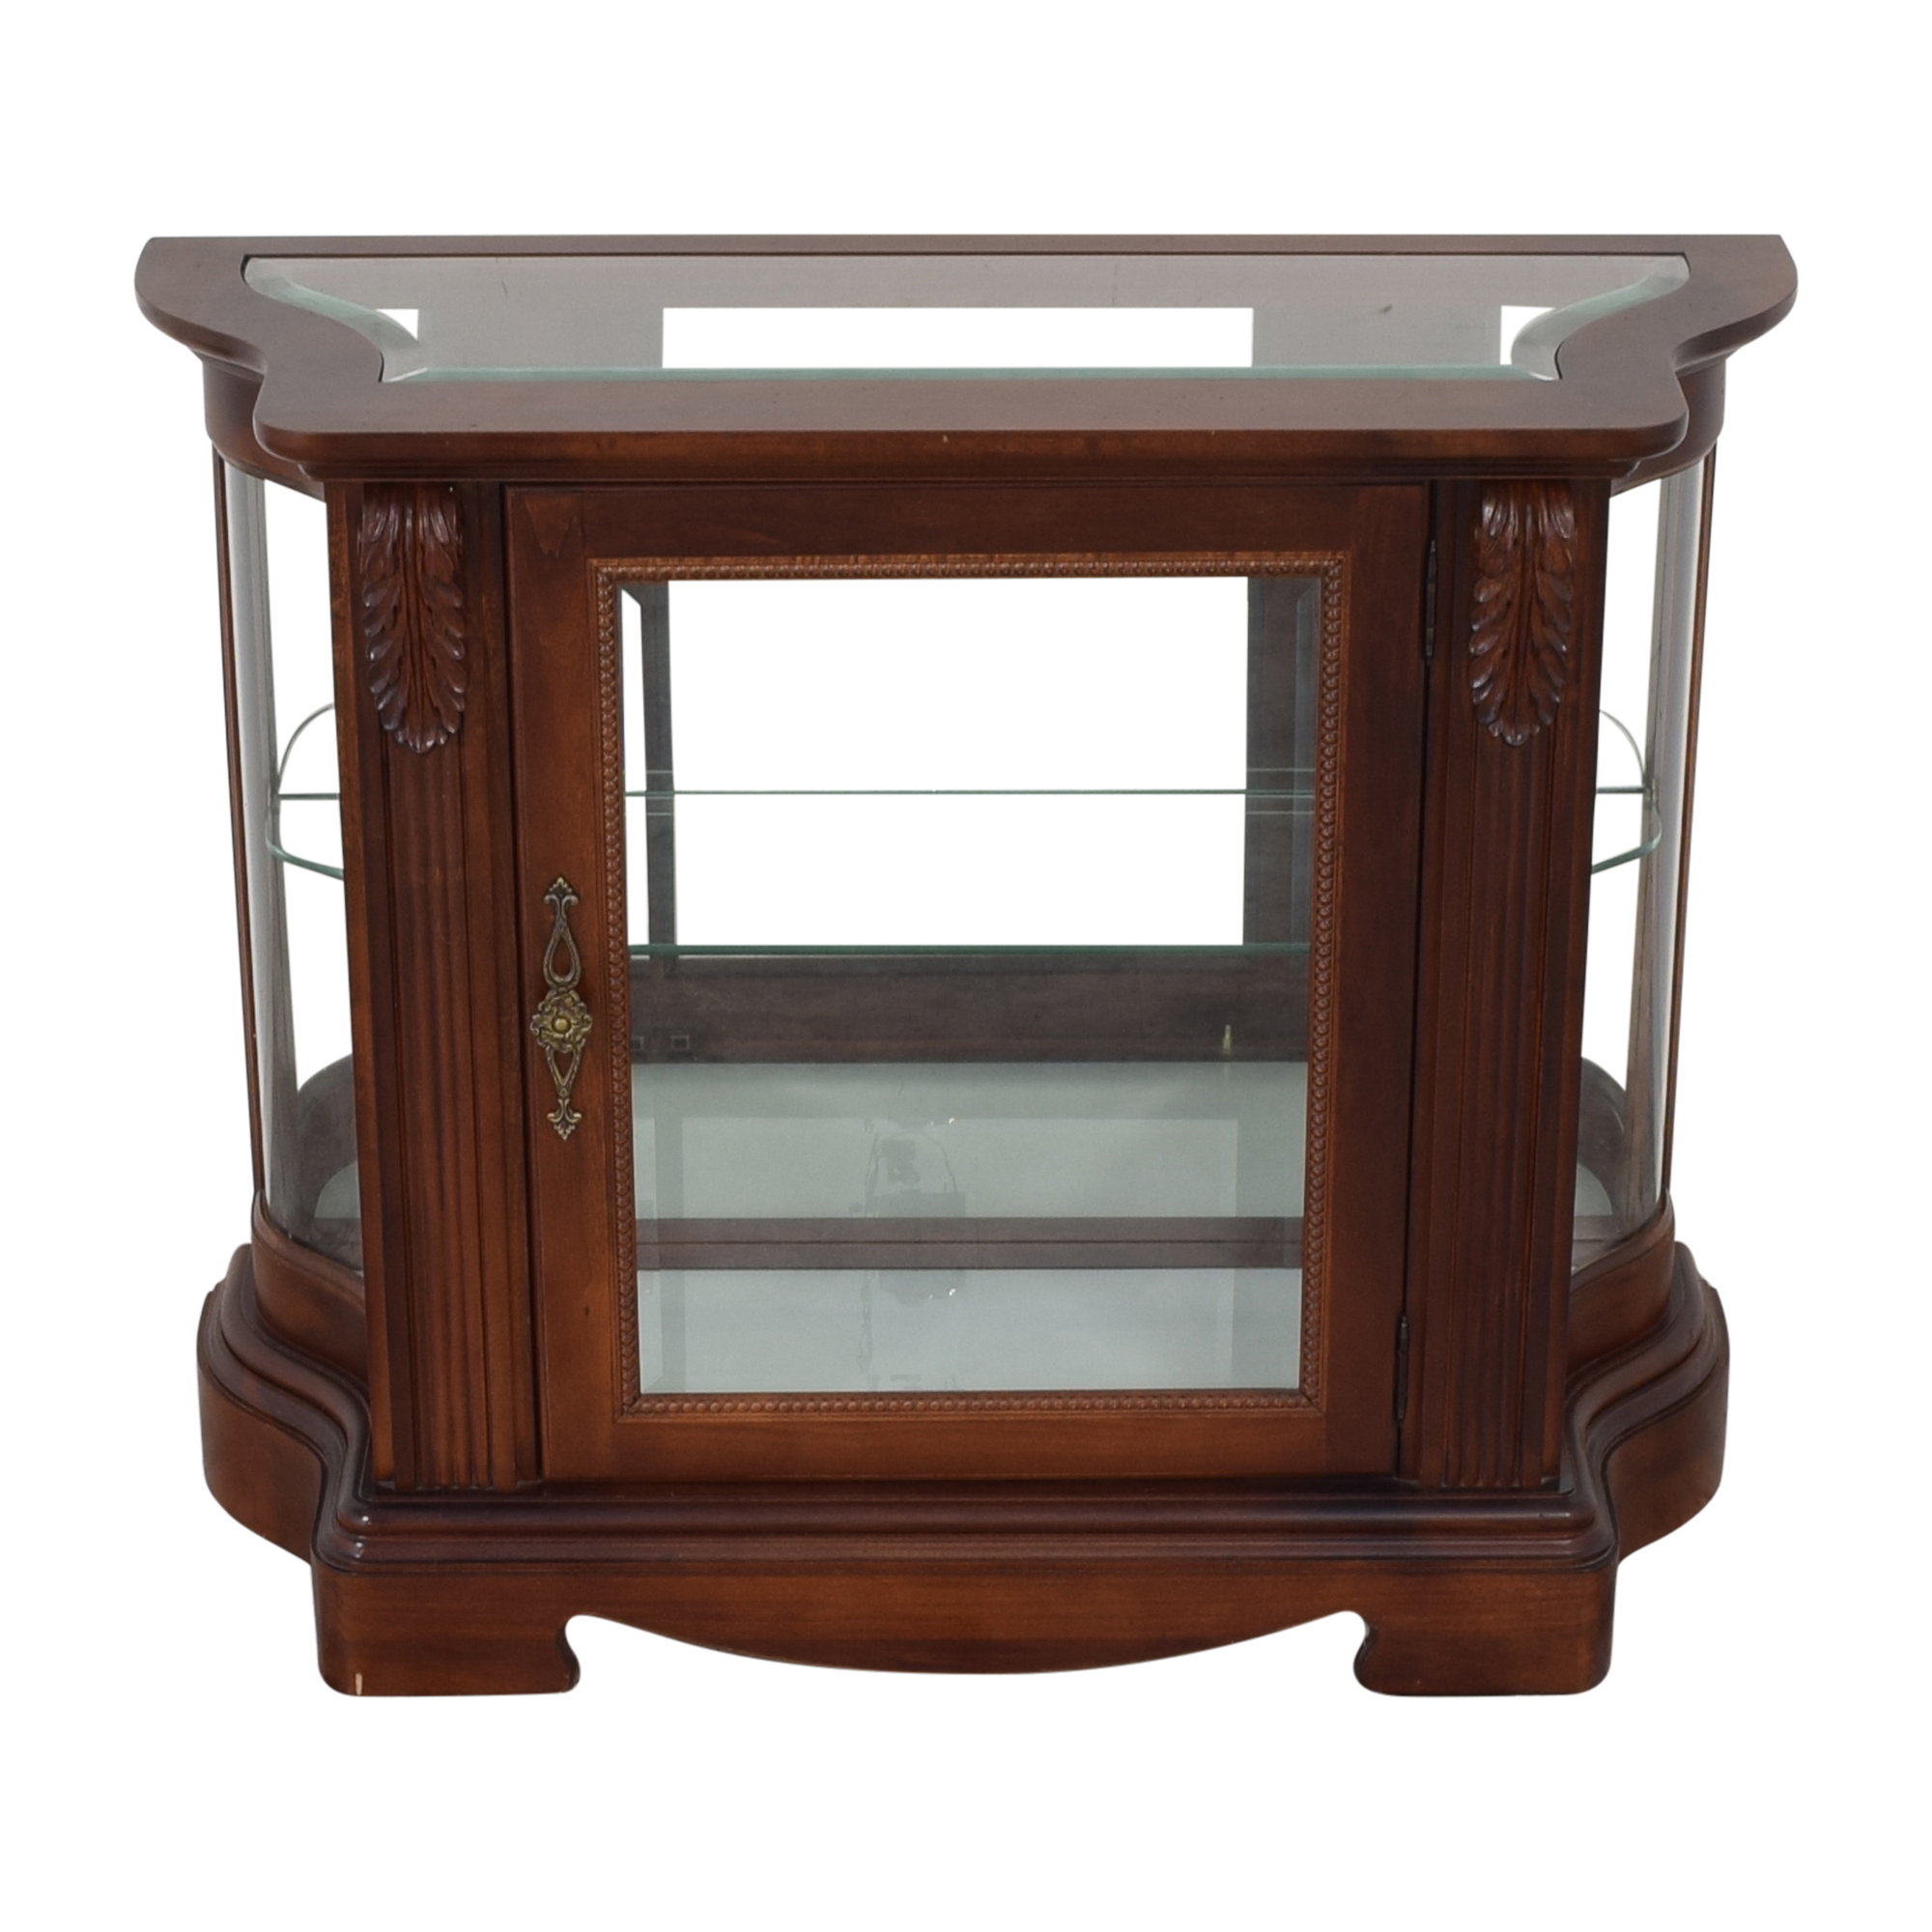 Thomasville Thomasville Display Accent Table brown